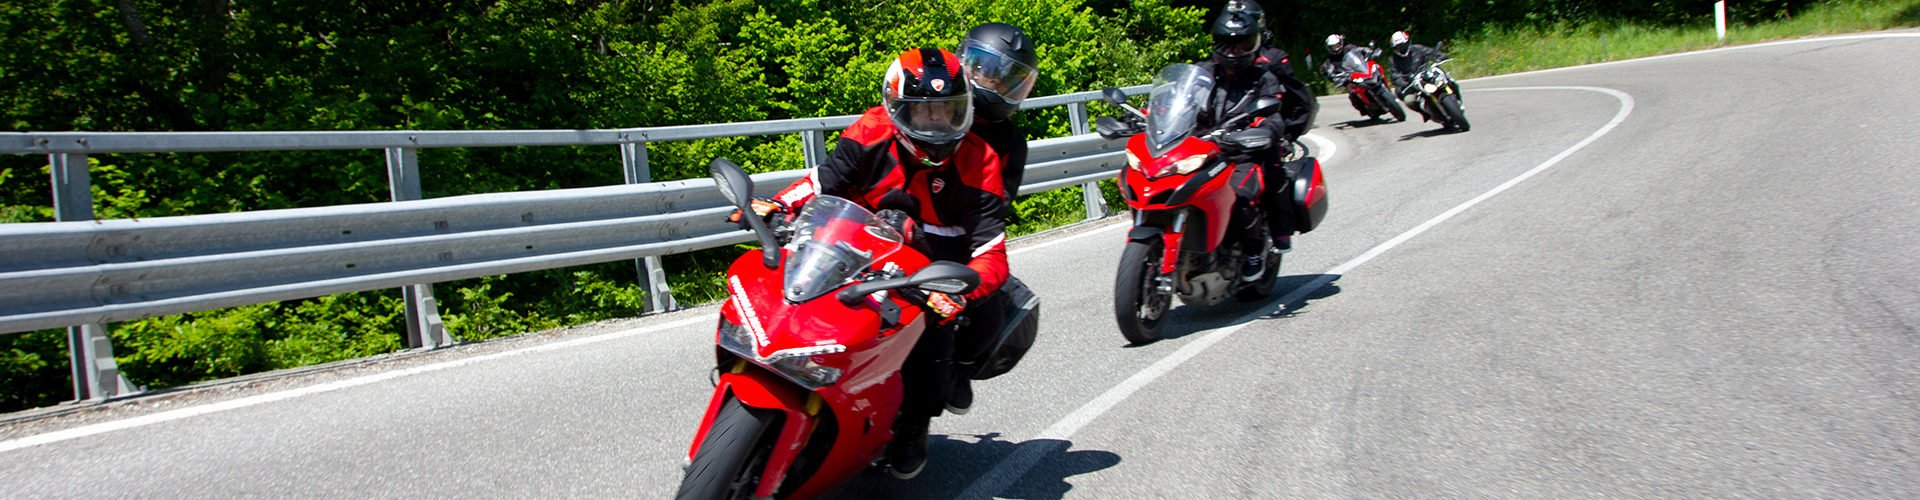 Make the most of your Ducati on the sweeping curves of Tuscany and Umbria in Tuscany